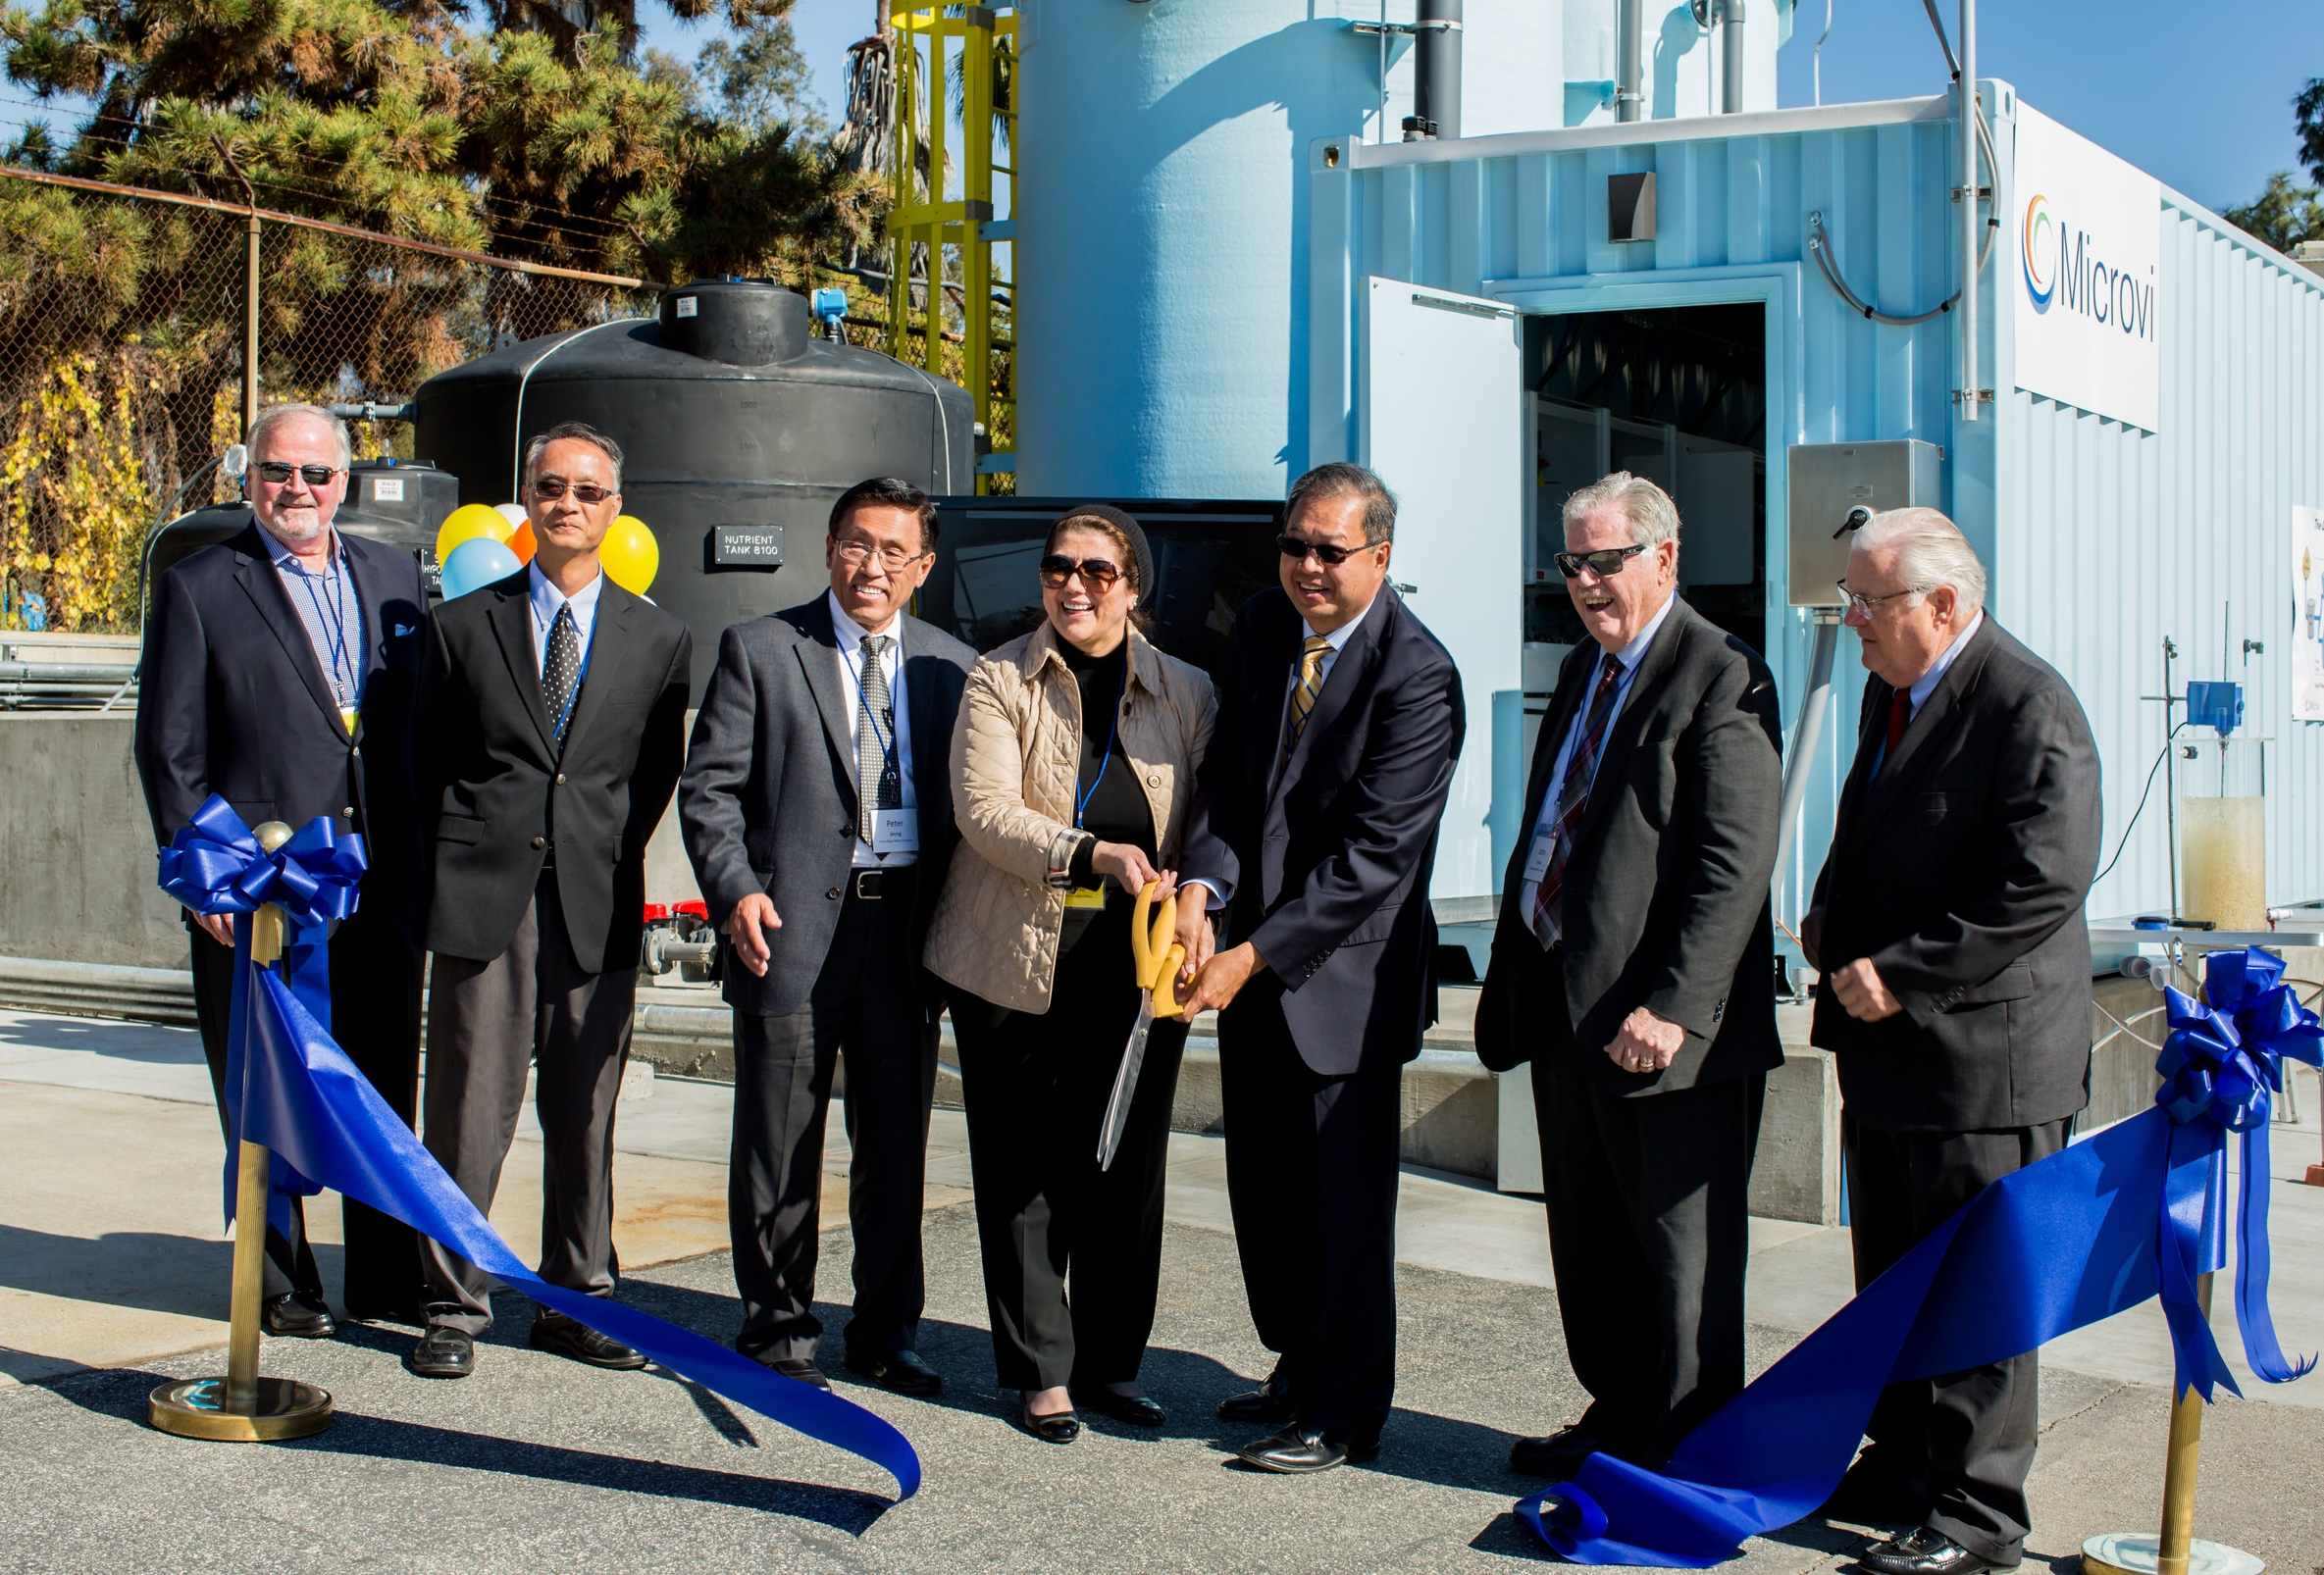 The grand opening ceremony for Microvi's nitrate-removal plant for drinking water at Sunny Slope Water Company in Pasadena, California.